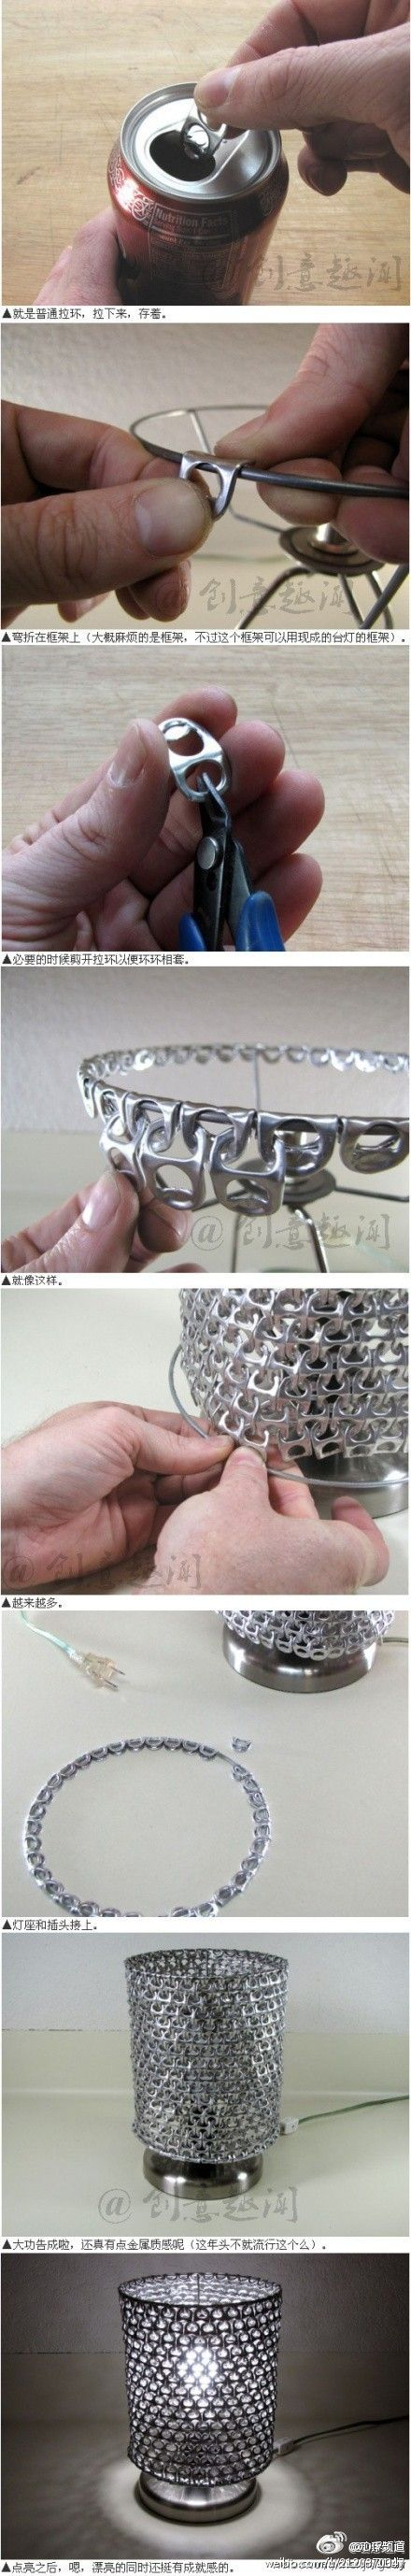 Too bad we don't drink soda... I wonder if you can buy soda tabs?!?!  This is really neat :)